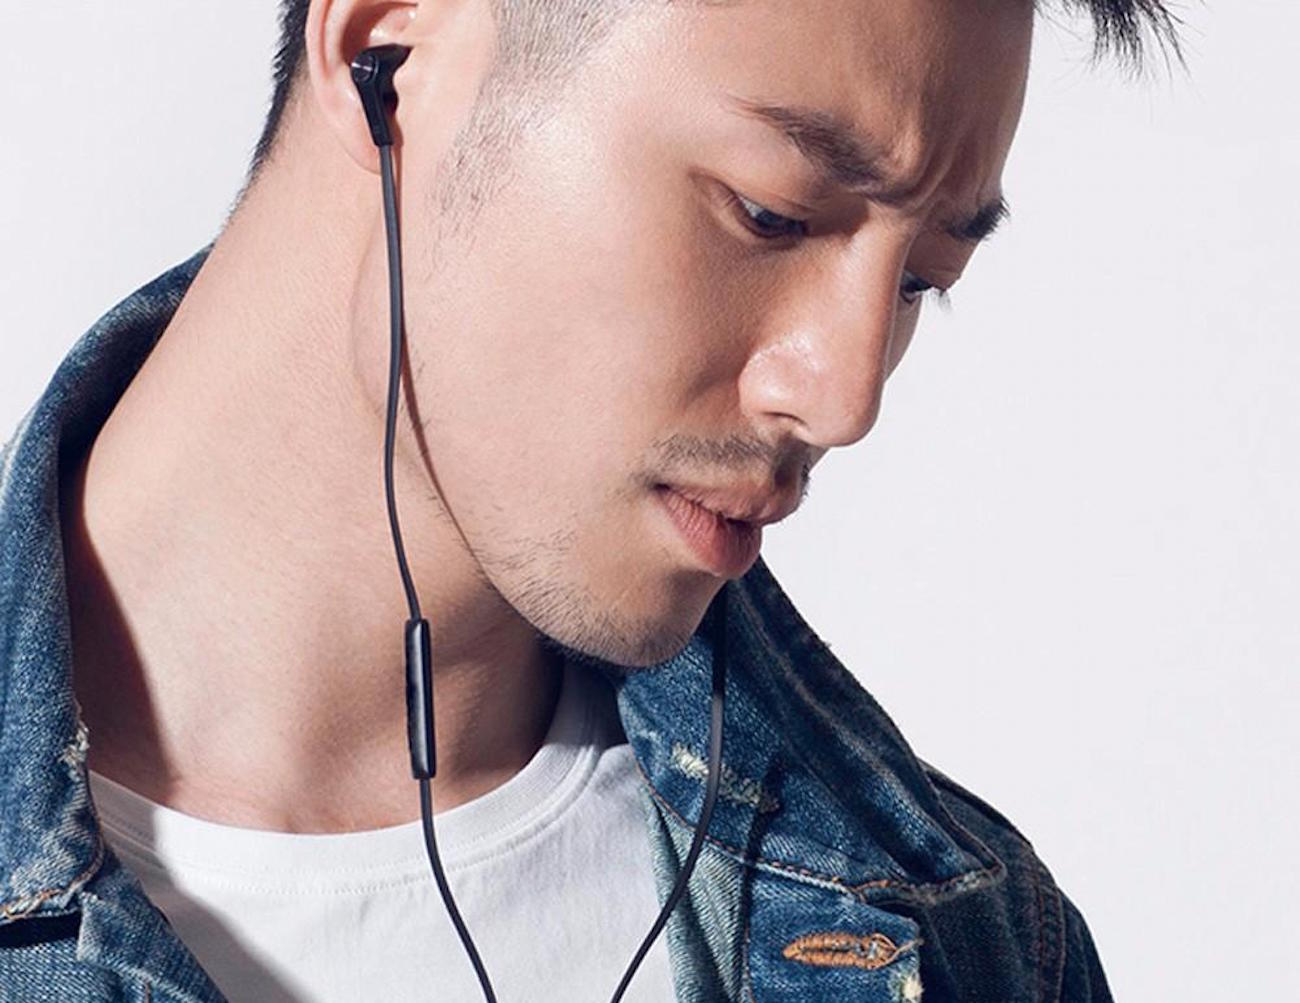 Xiaomi Piston In-Ear Stereo Earphone